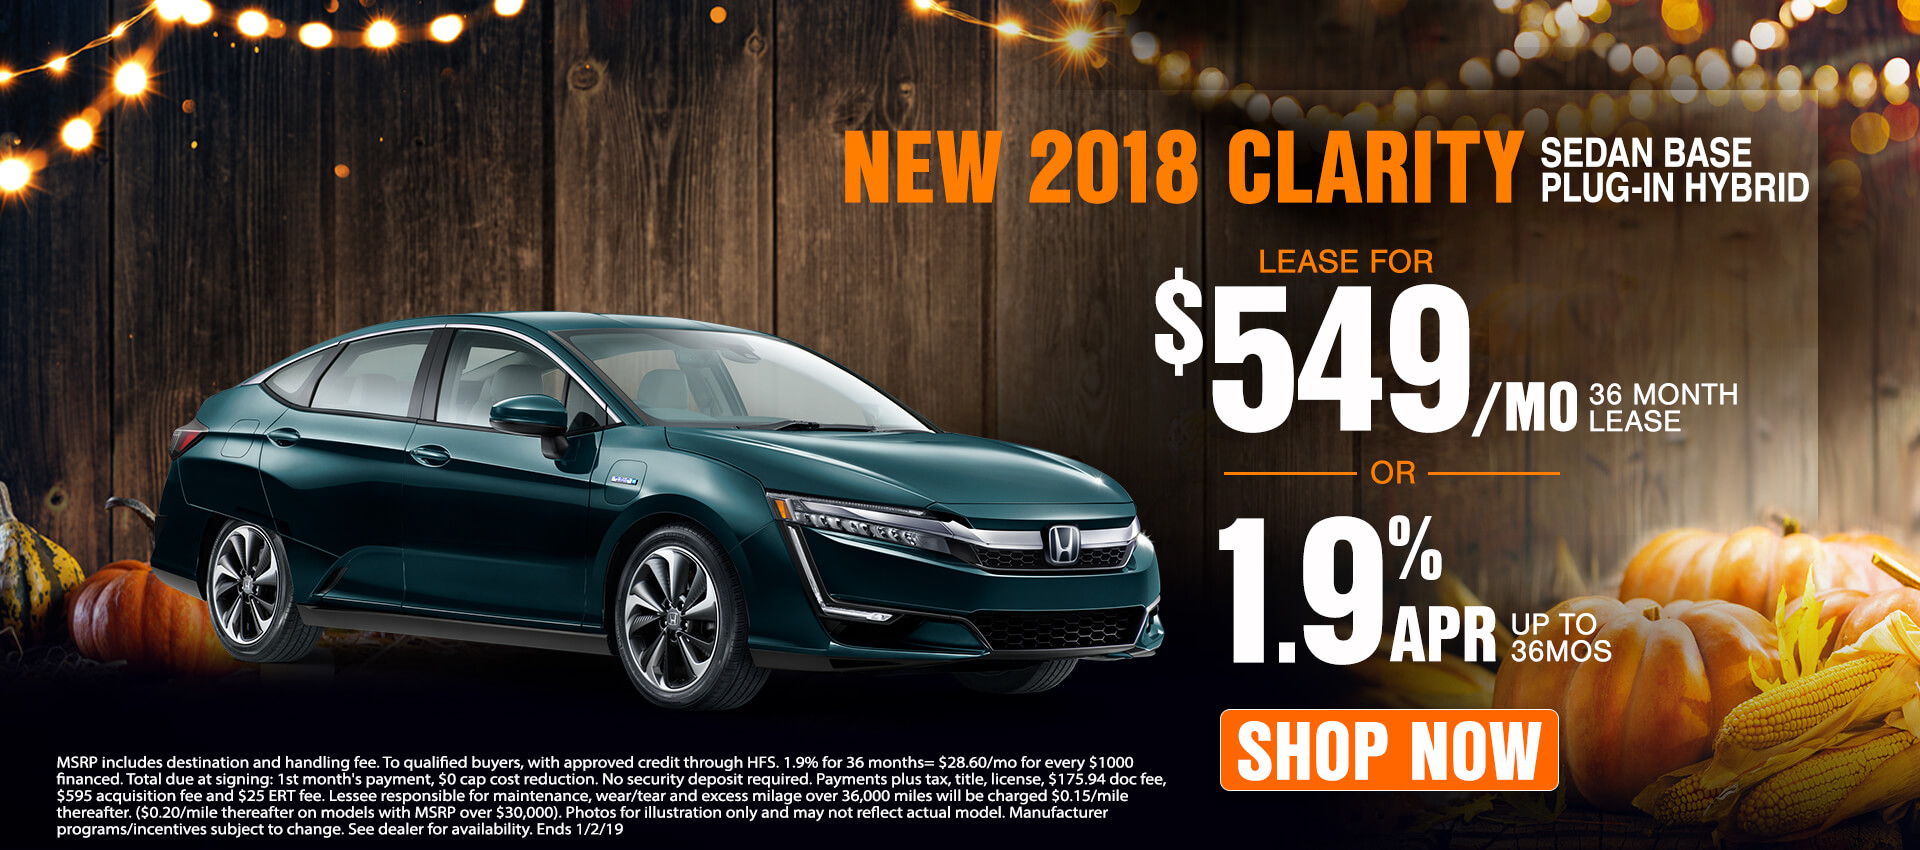 2018 Clarity $549 Lease